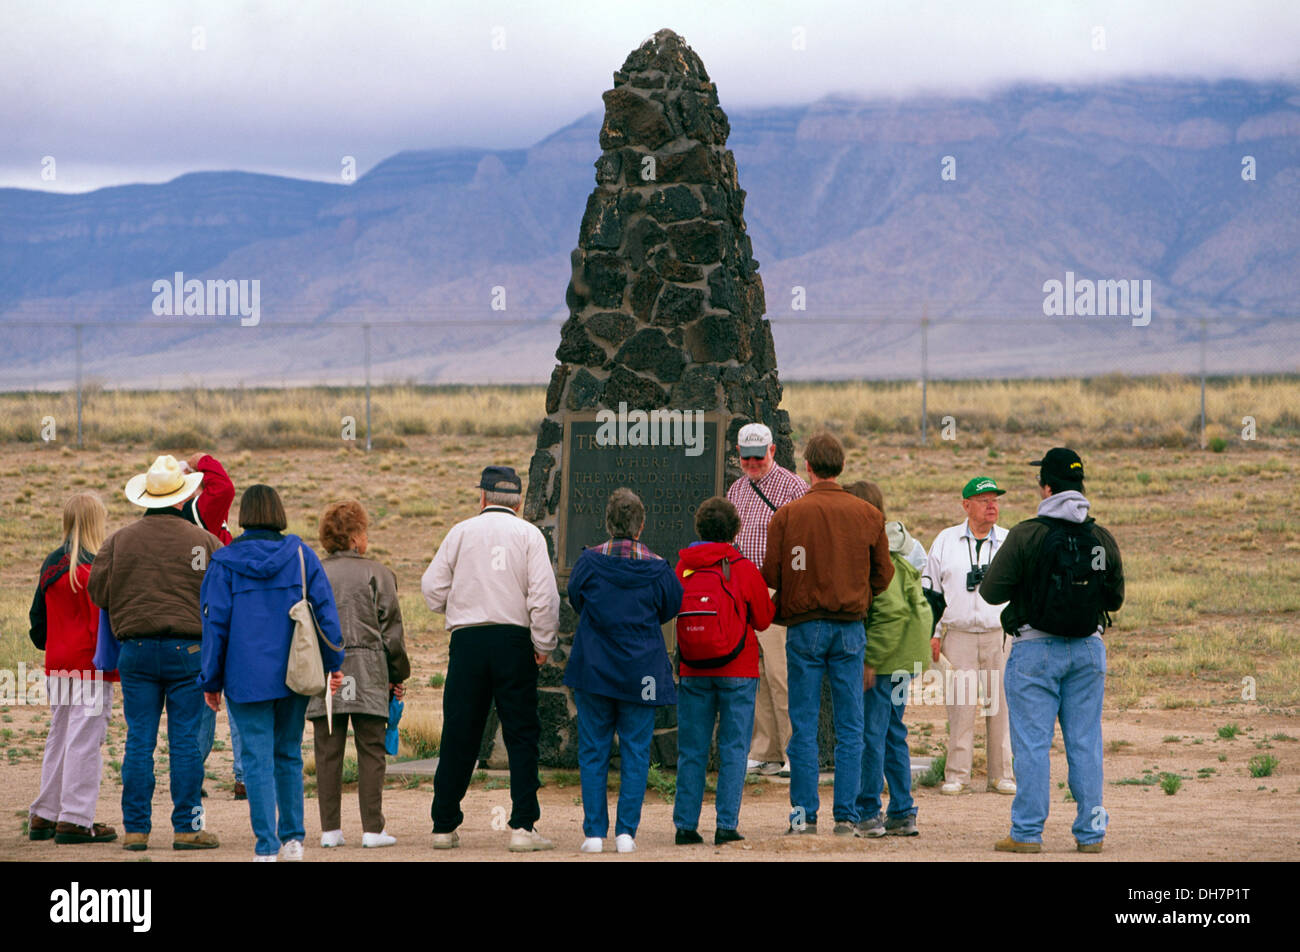 Visitors around stone marker at Trinity Site where first nuclear explosion took place in 1945, New Mexico, USA - Stock Image